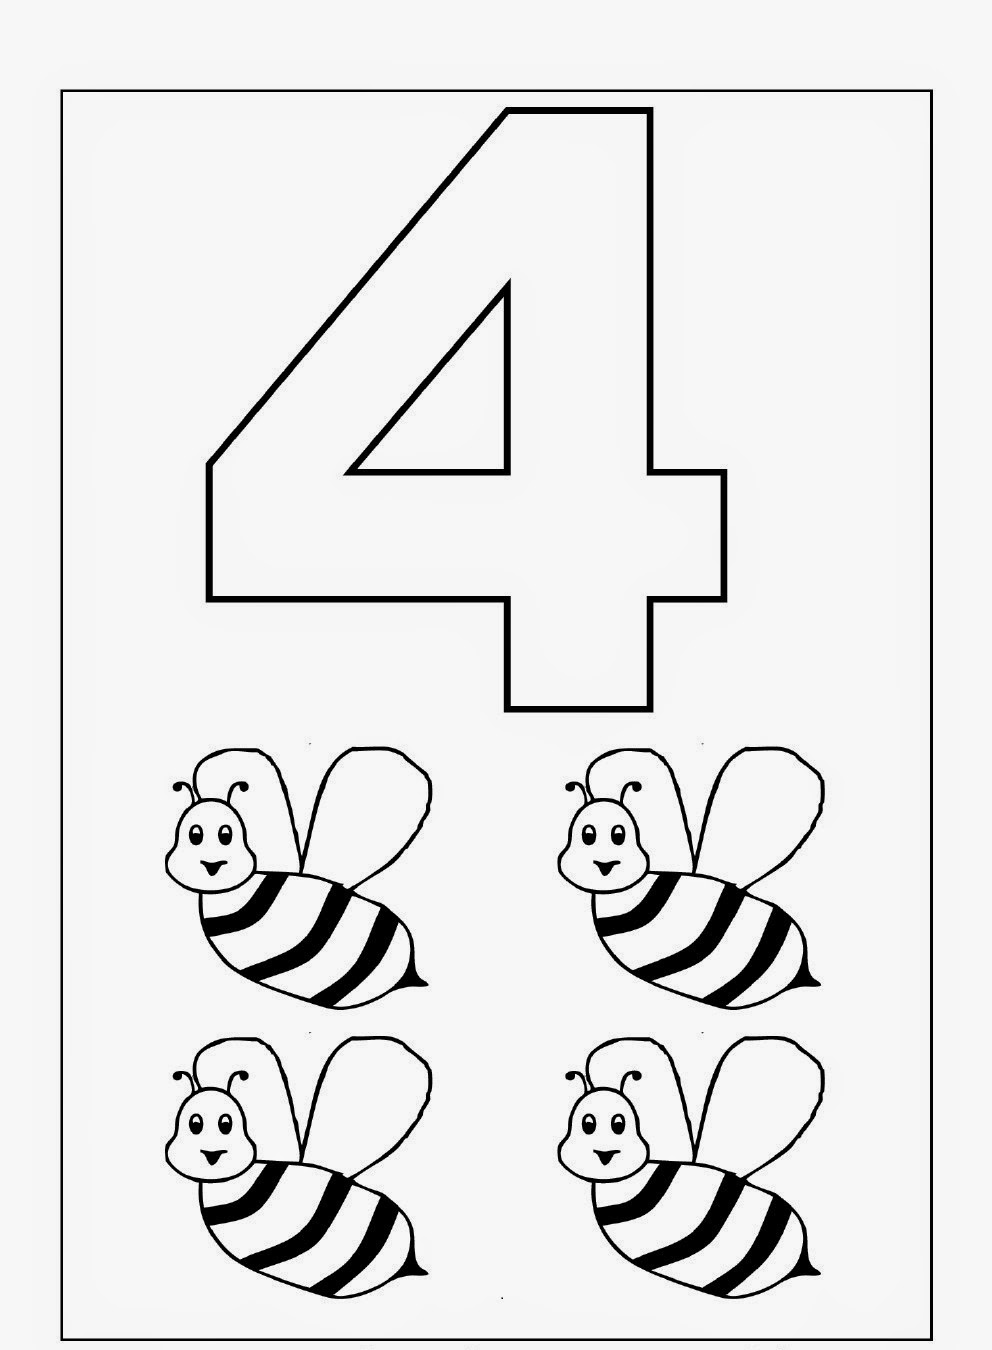 coloring toddler learning printables learning coloring page a free educational coloring printable toddler coloring printables learning